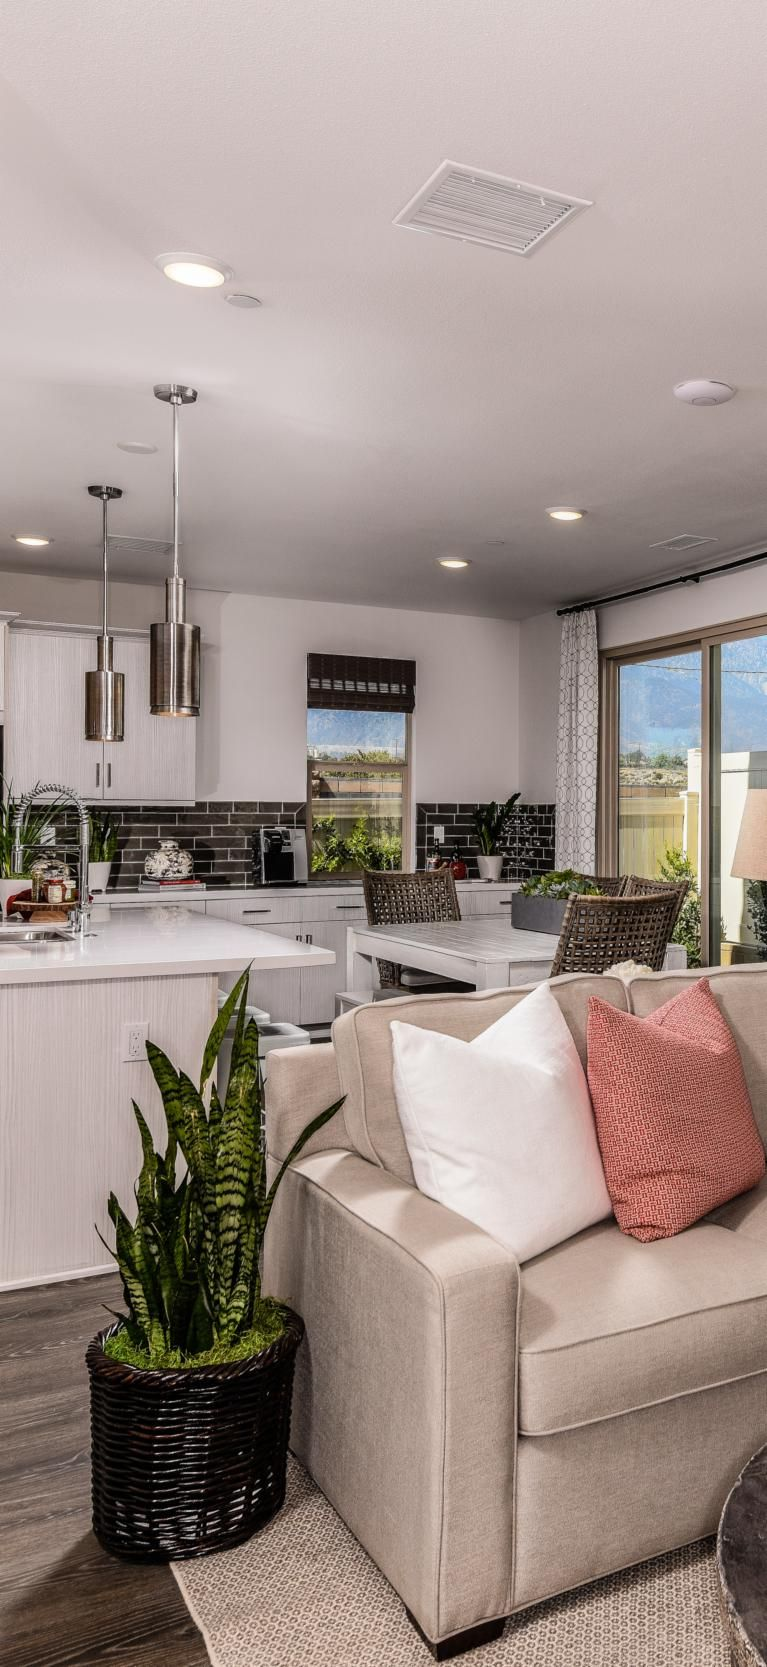 Imagine coming home to this nnewhome dreamhome homesforsale realestate socal luxuryliving